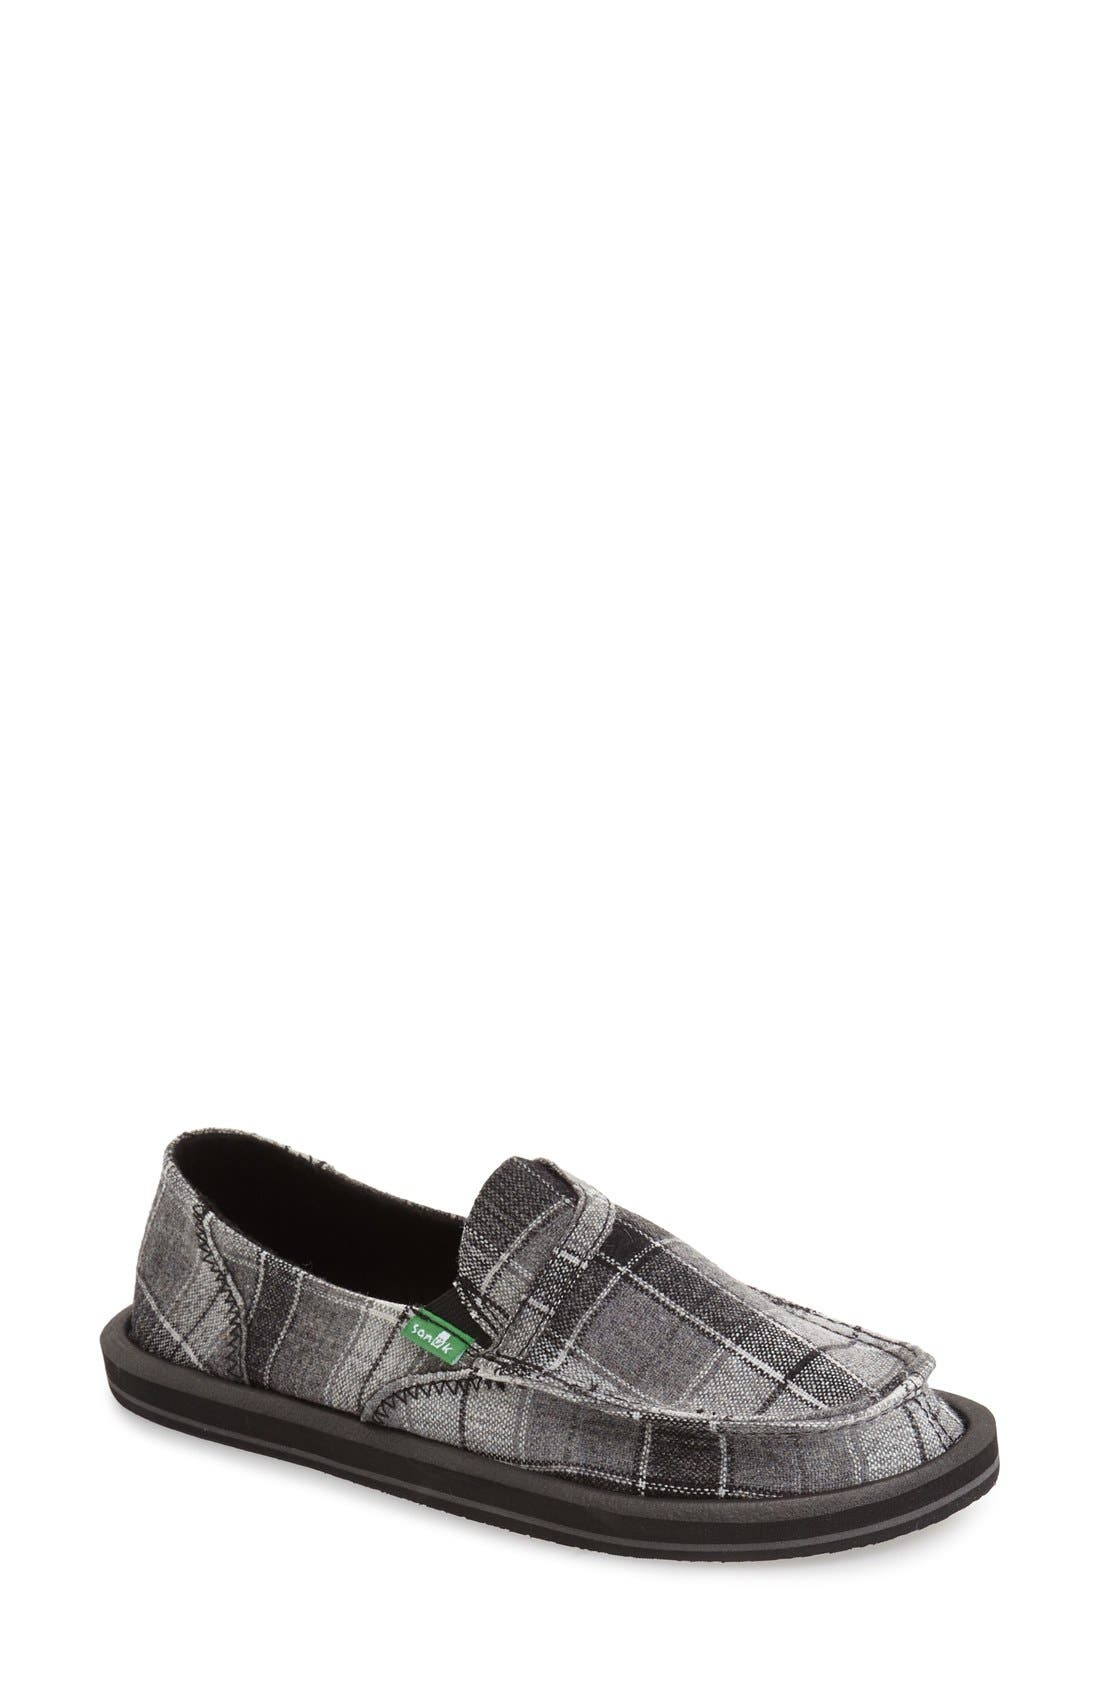 SANUK 'Pick Pocket' Plaid Slip-On